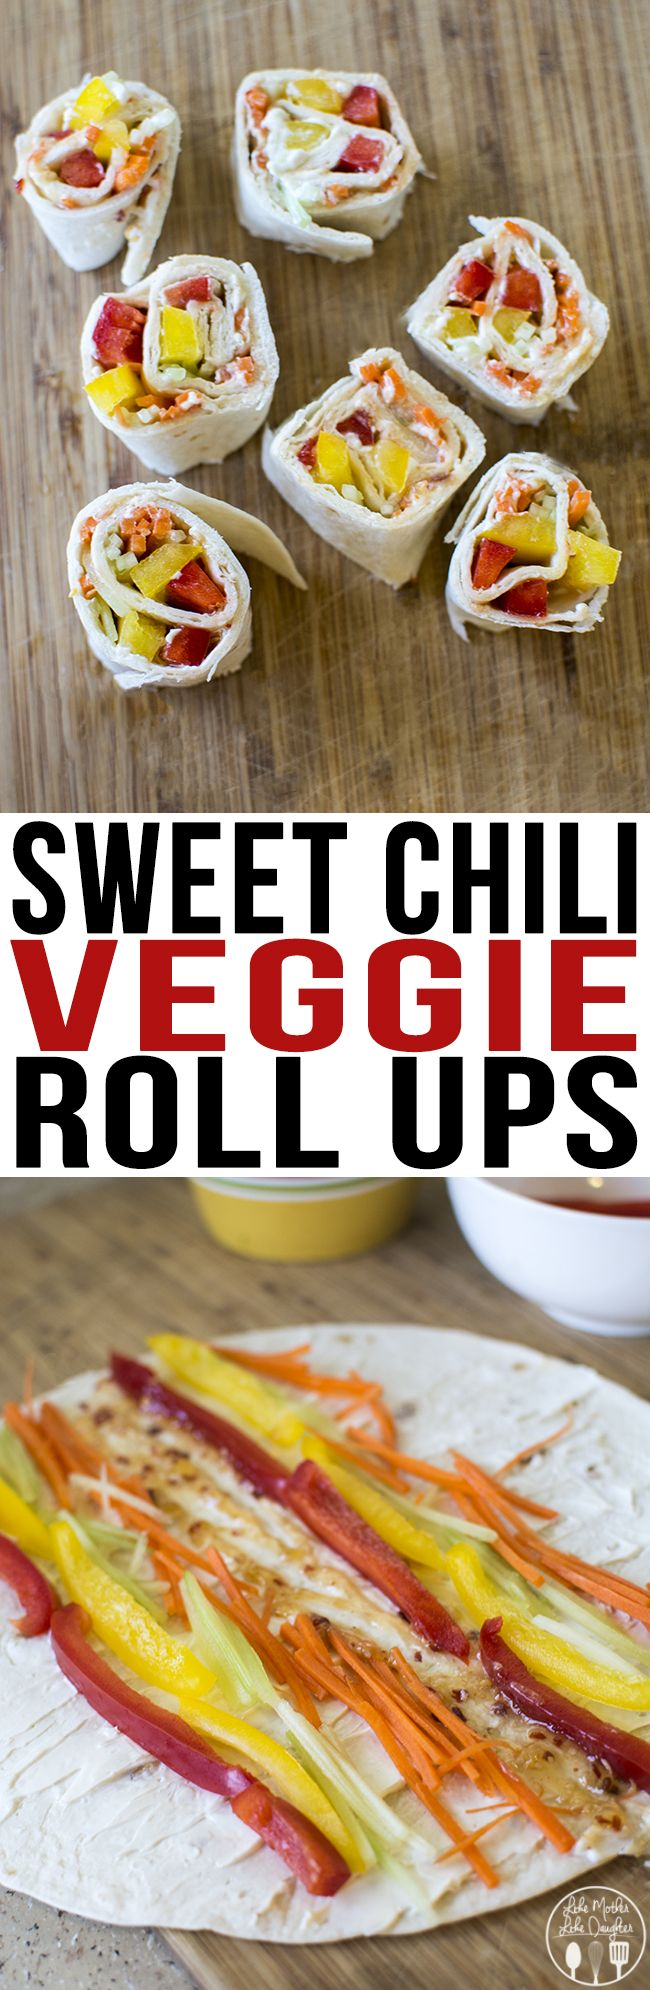 Sweet Chili Veggie Roll Ups - These lower calorie sweet chili veggie roll ups are the perfect snack. They're made with a homemade sweet chili sauce, all rolled up in a tortilla with fat free cream cheese and julienned vegetables. #SplendaSweeties #SweetSwaps #ad